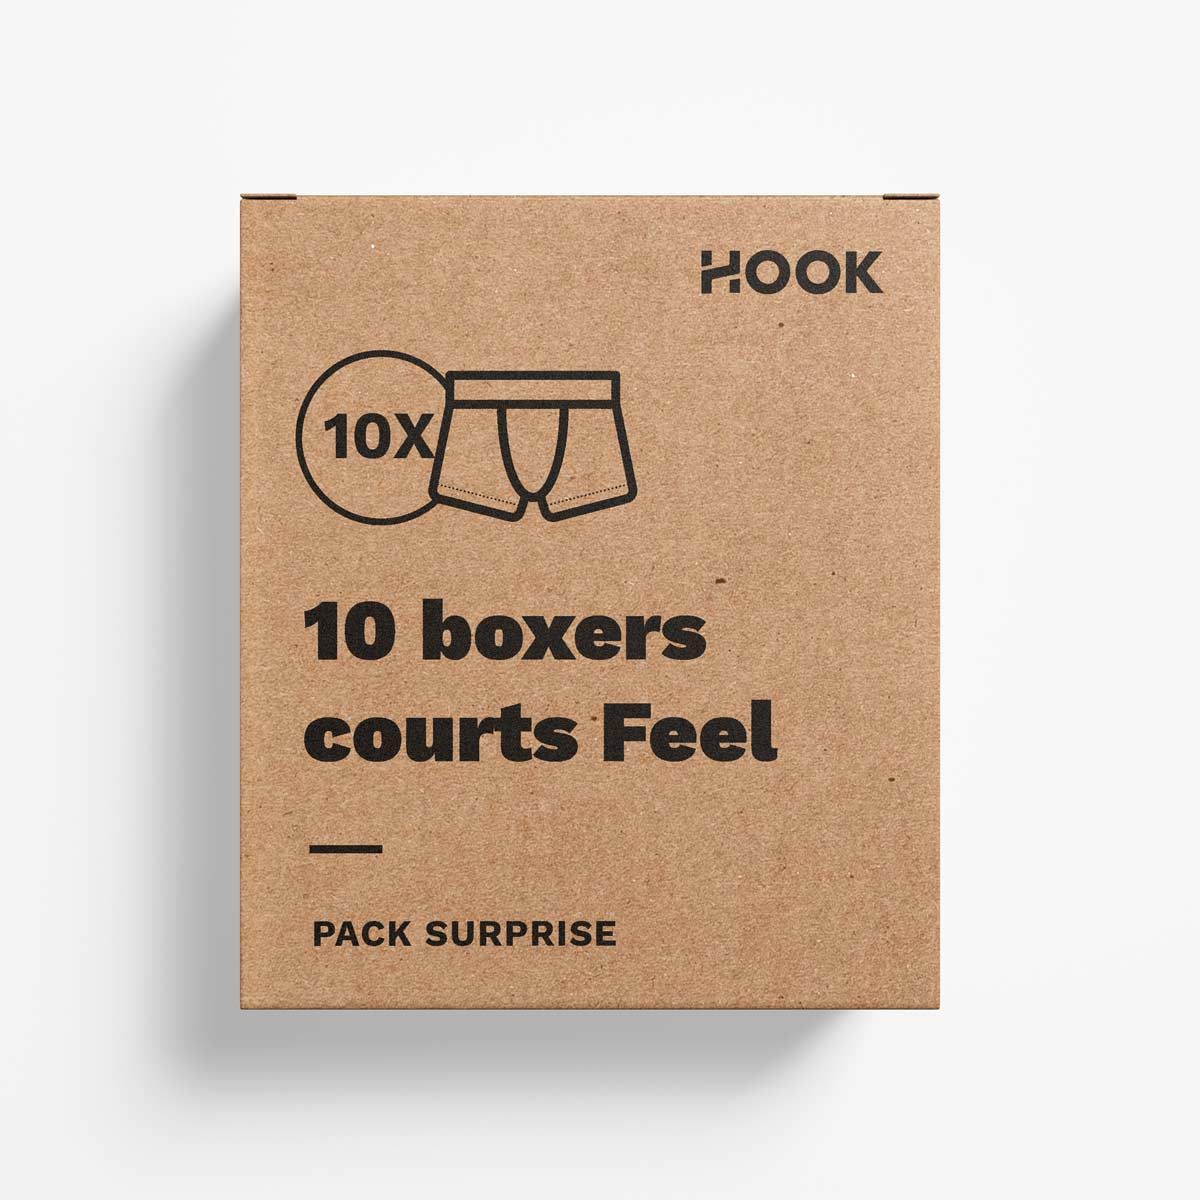 Boxer court Feel par Hook : pack de 10 boxers courts